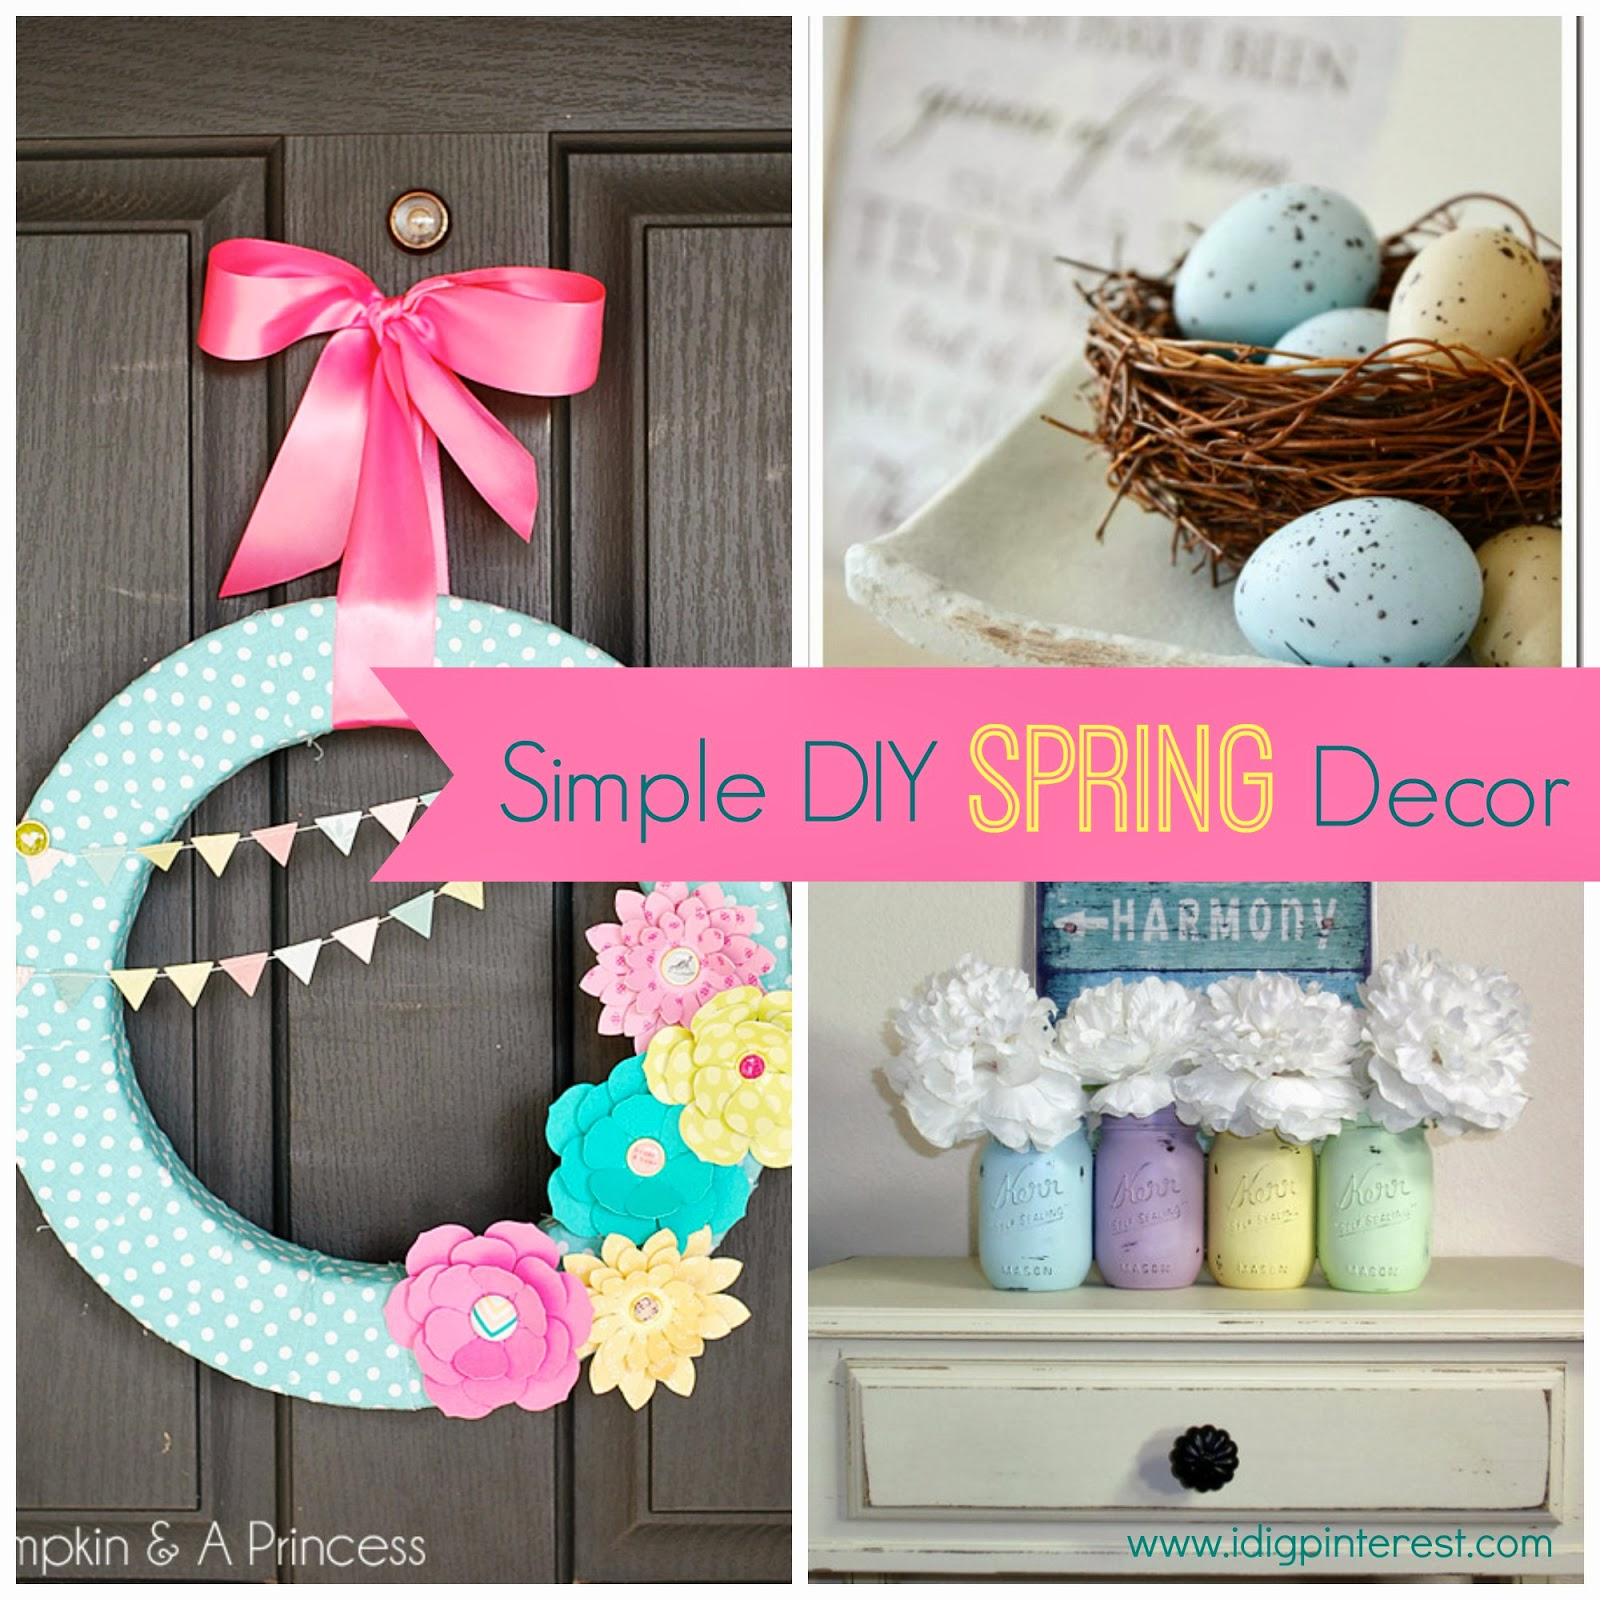 Diy Kitchen Decor Pinterest: Simple DIY Spring Decor Ideas